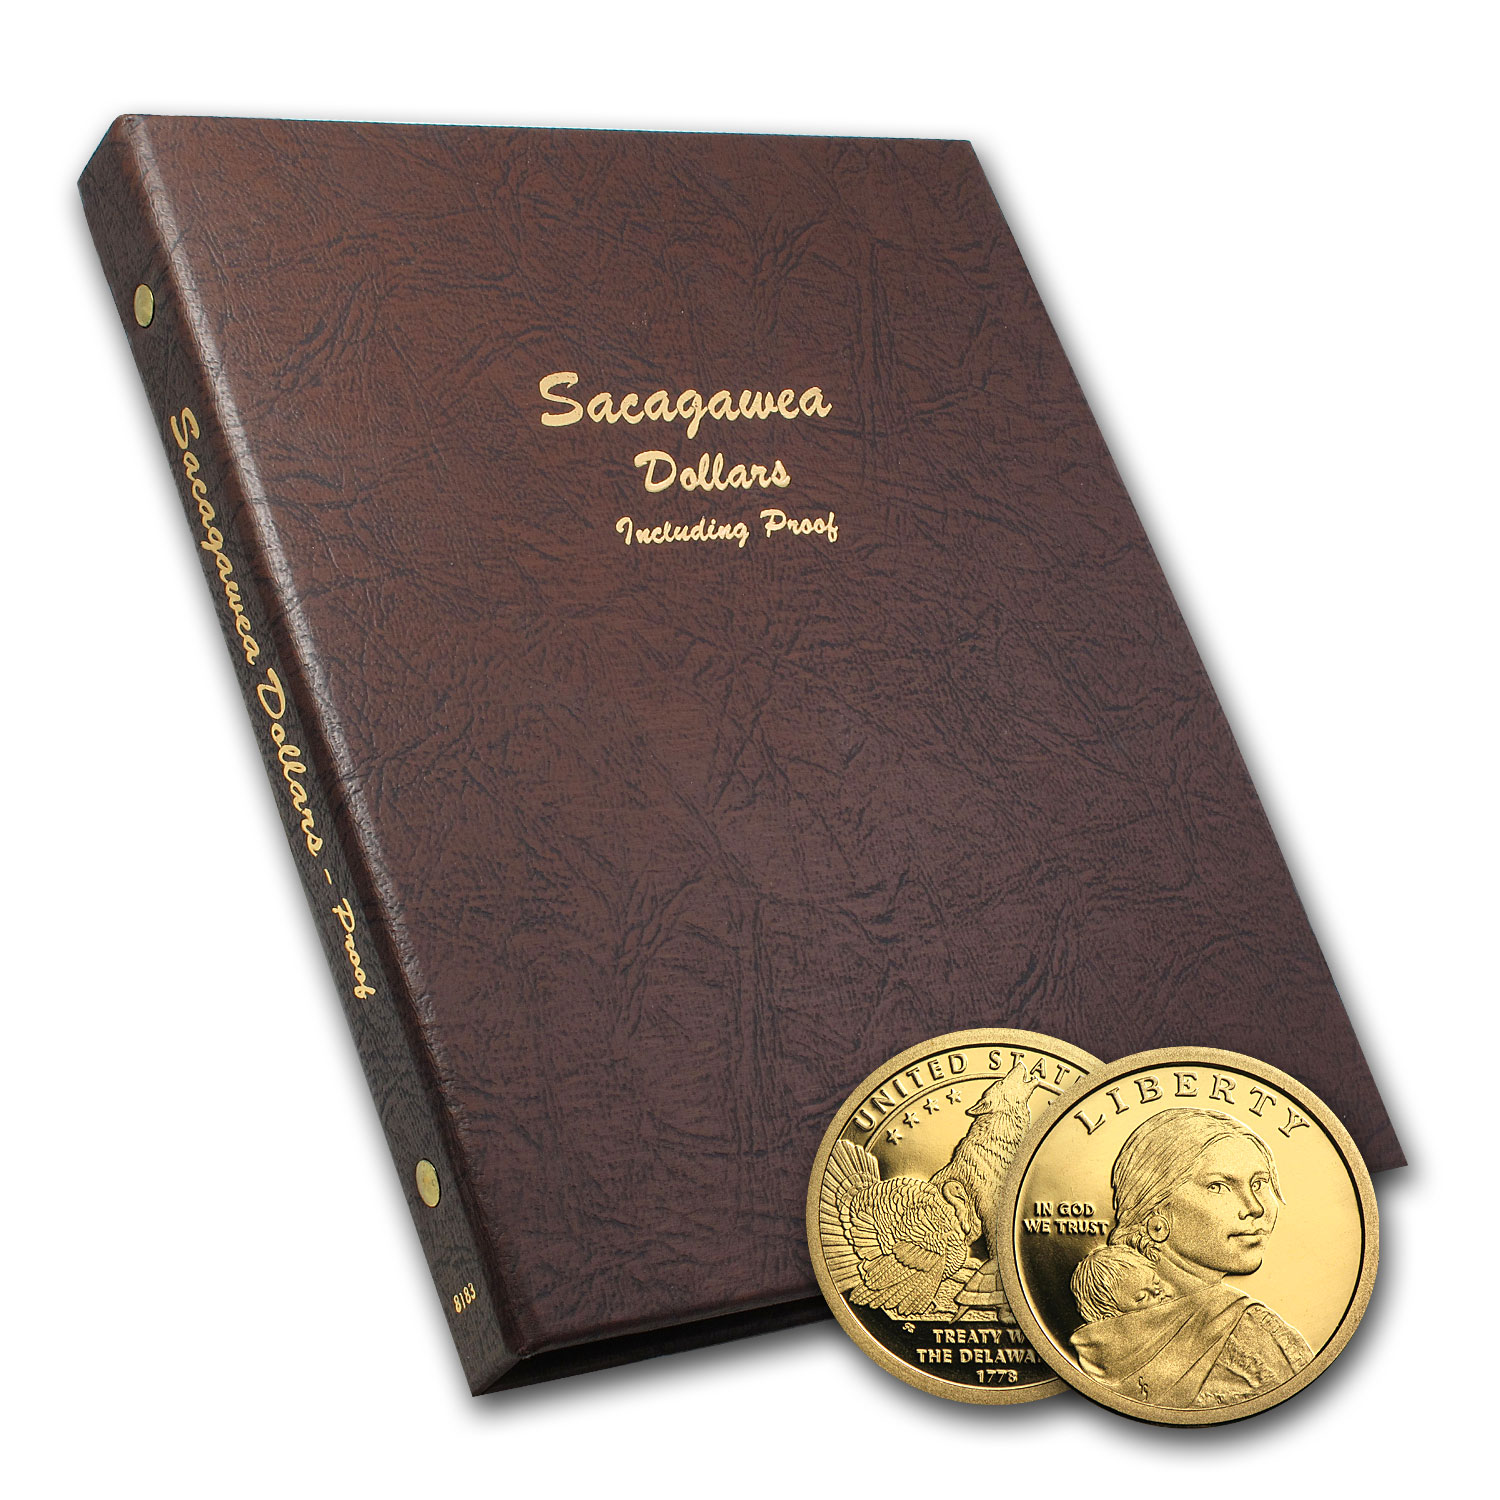 2000-2013 42-Coin Sacagawea Dollar Set BU/Proof (Dansco Album)